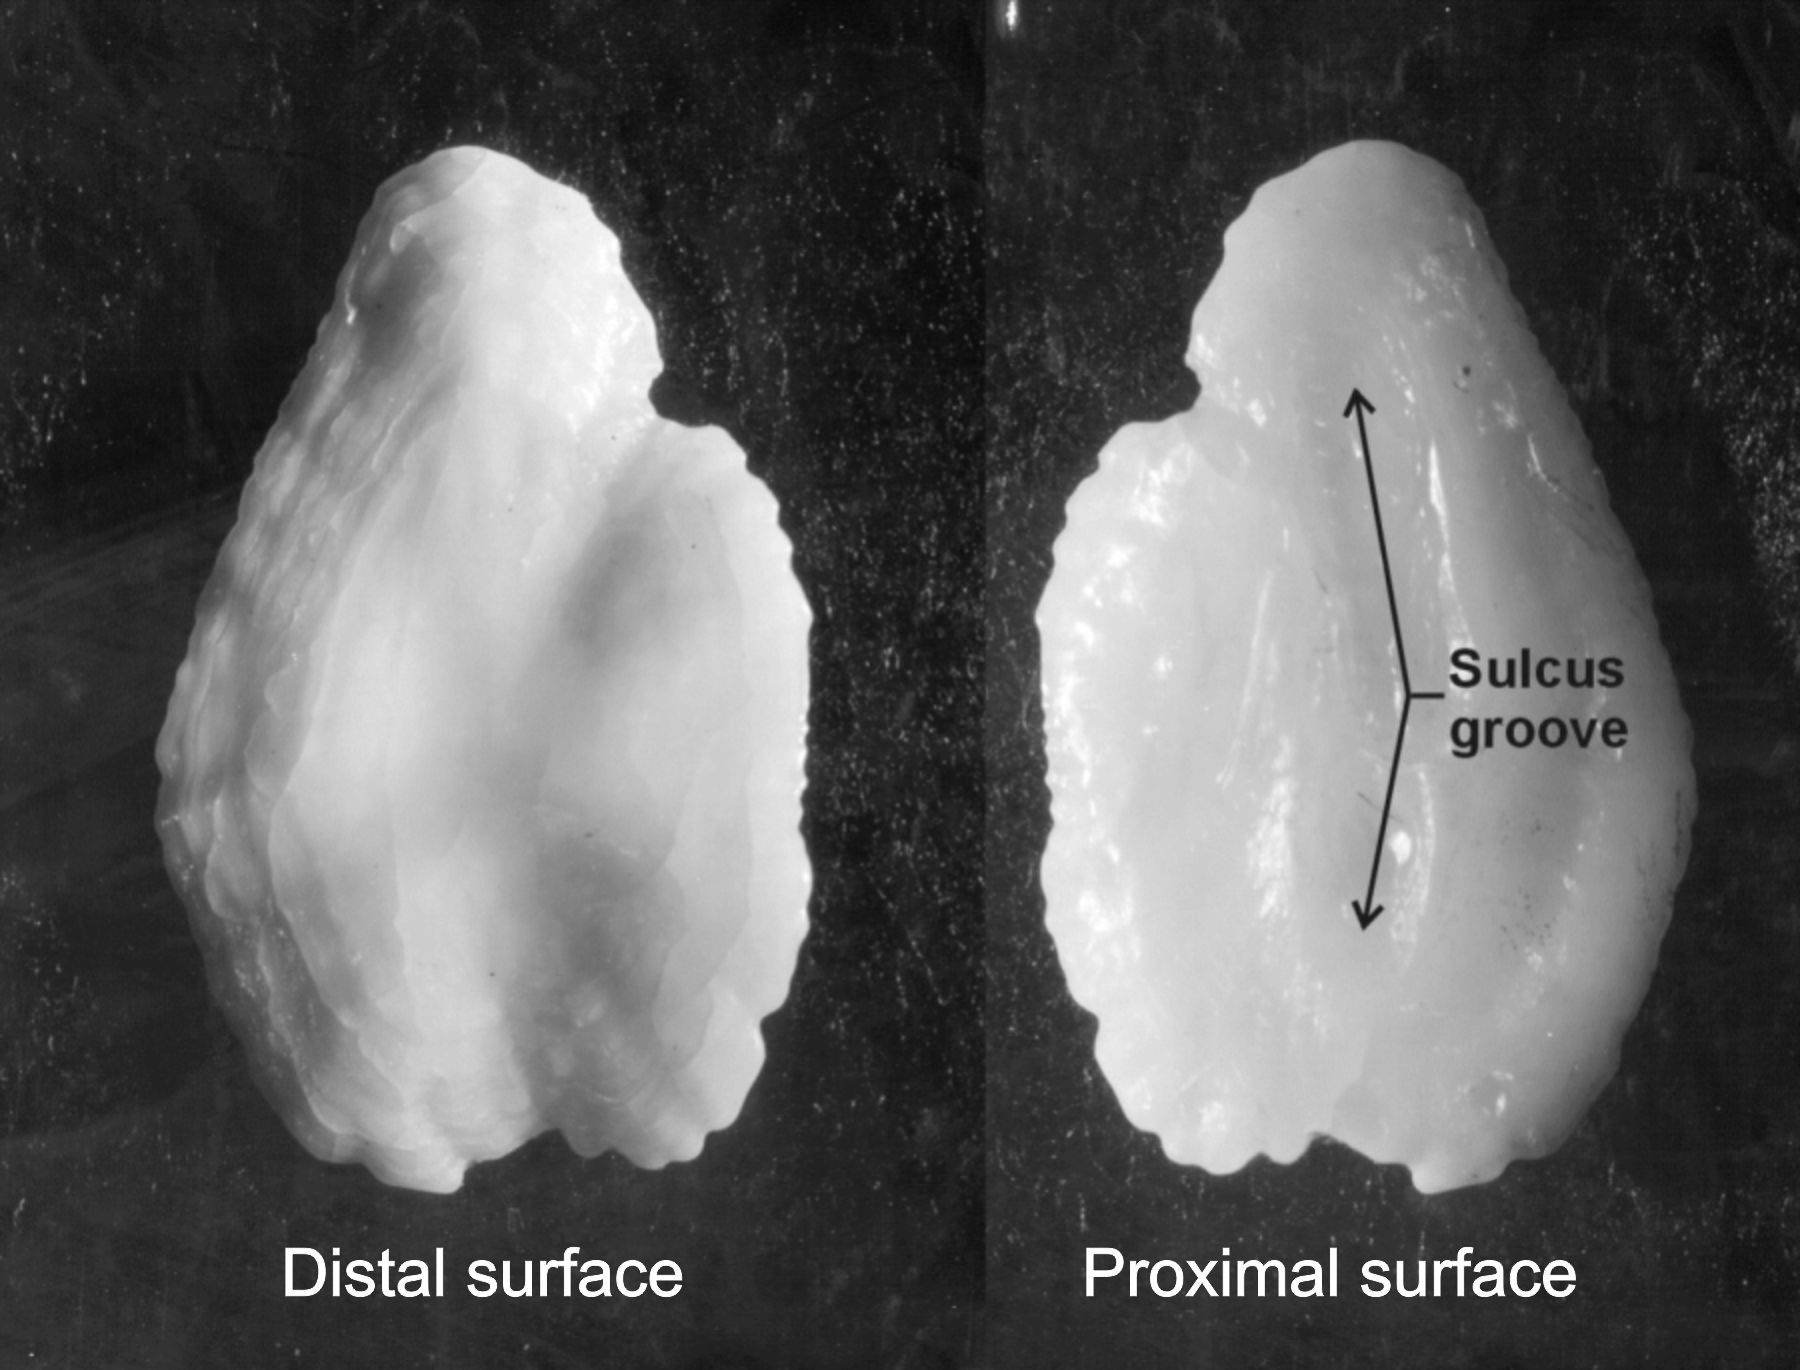 Distal and proximal surfaces